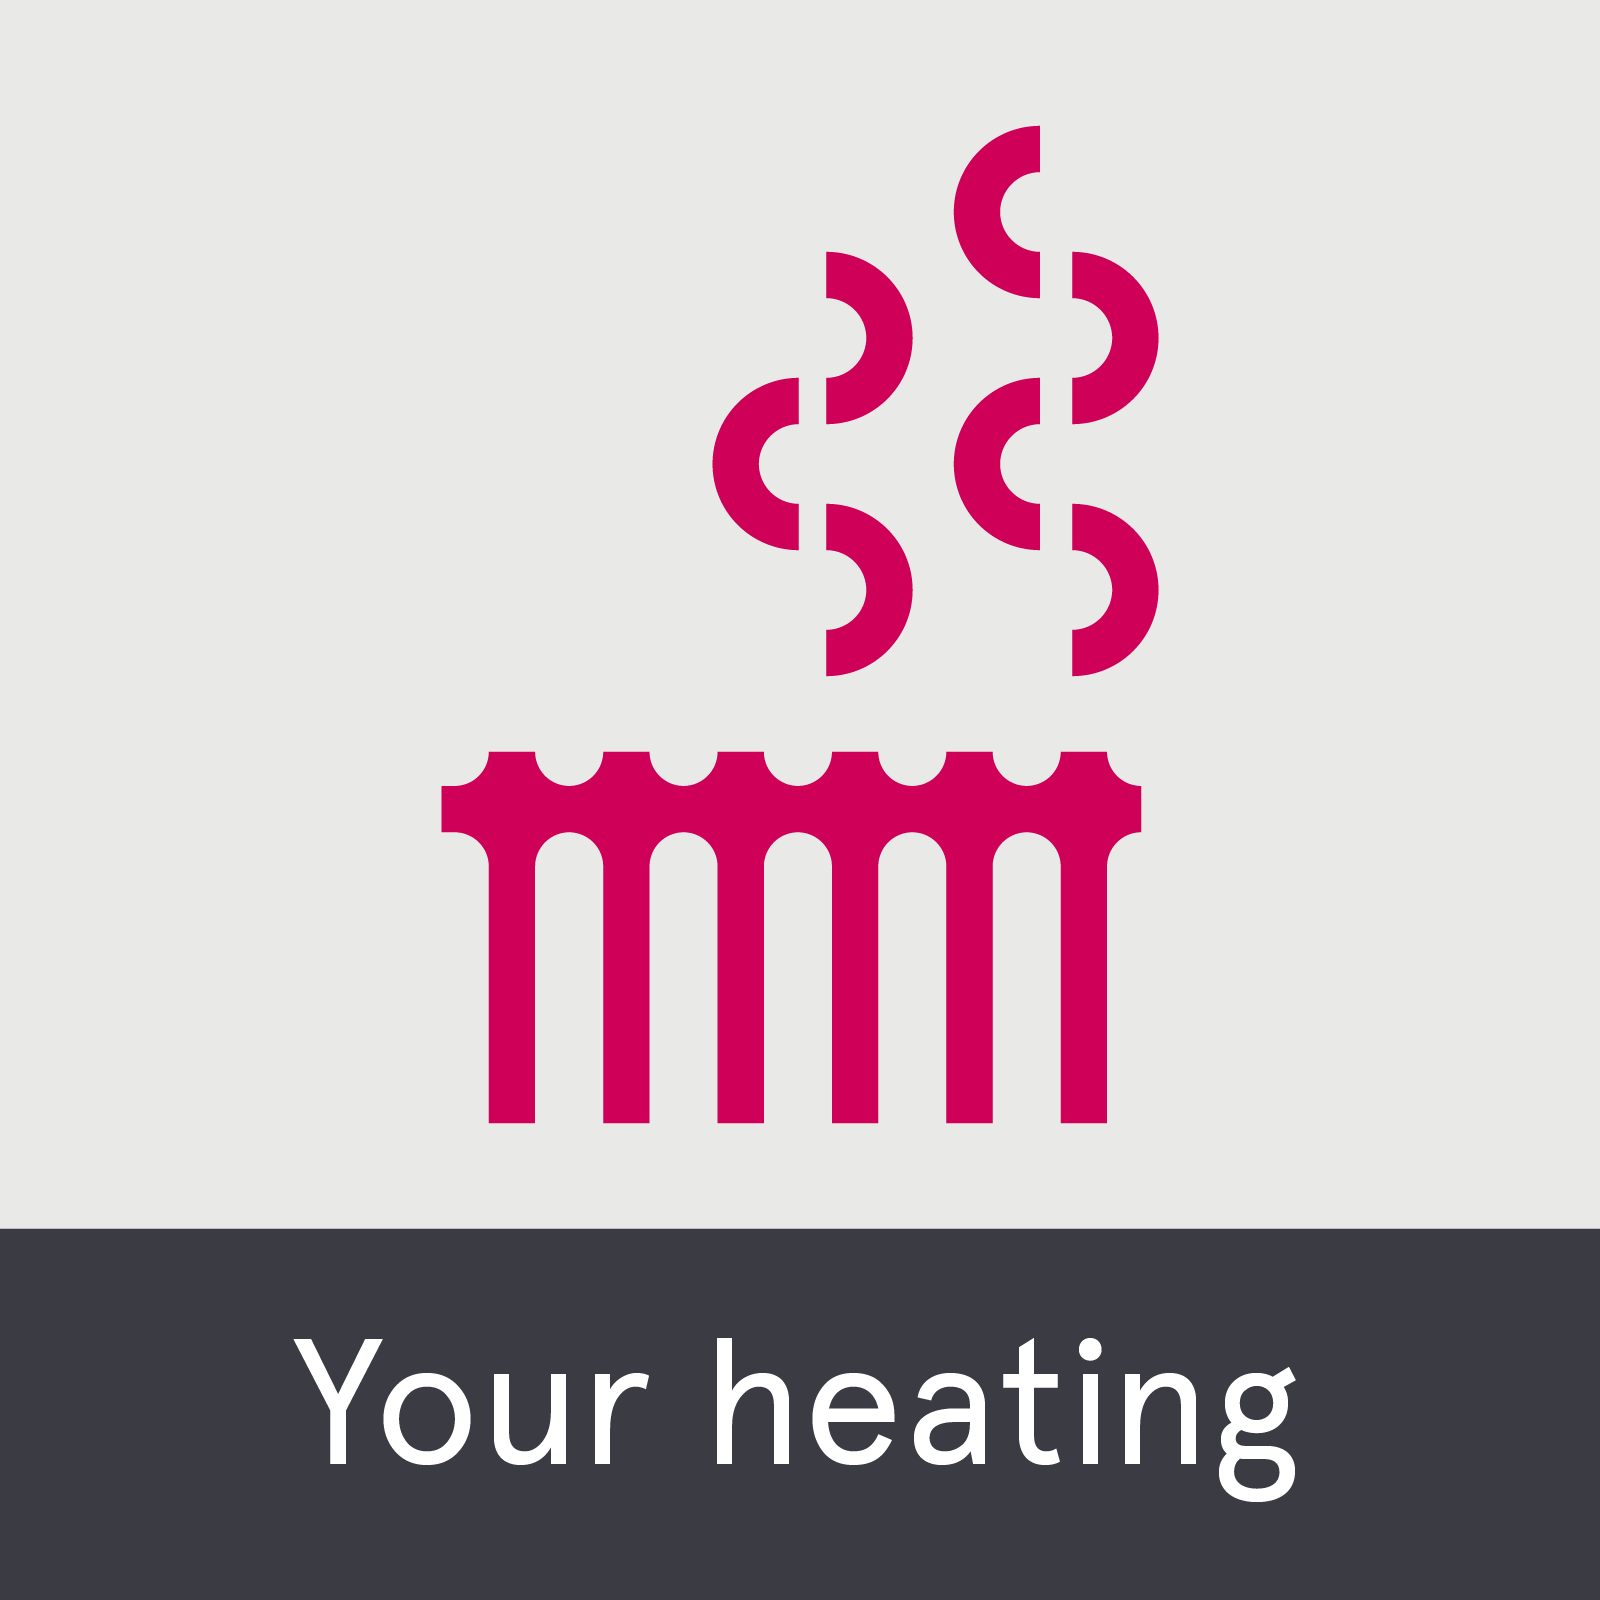 Your heating